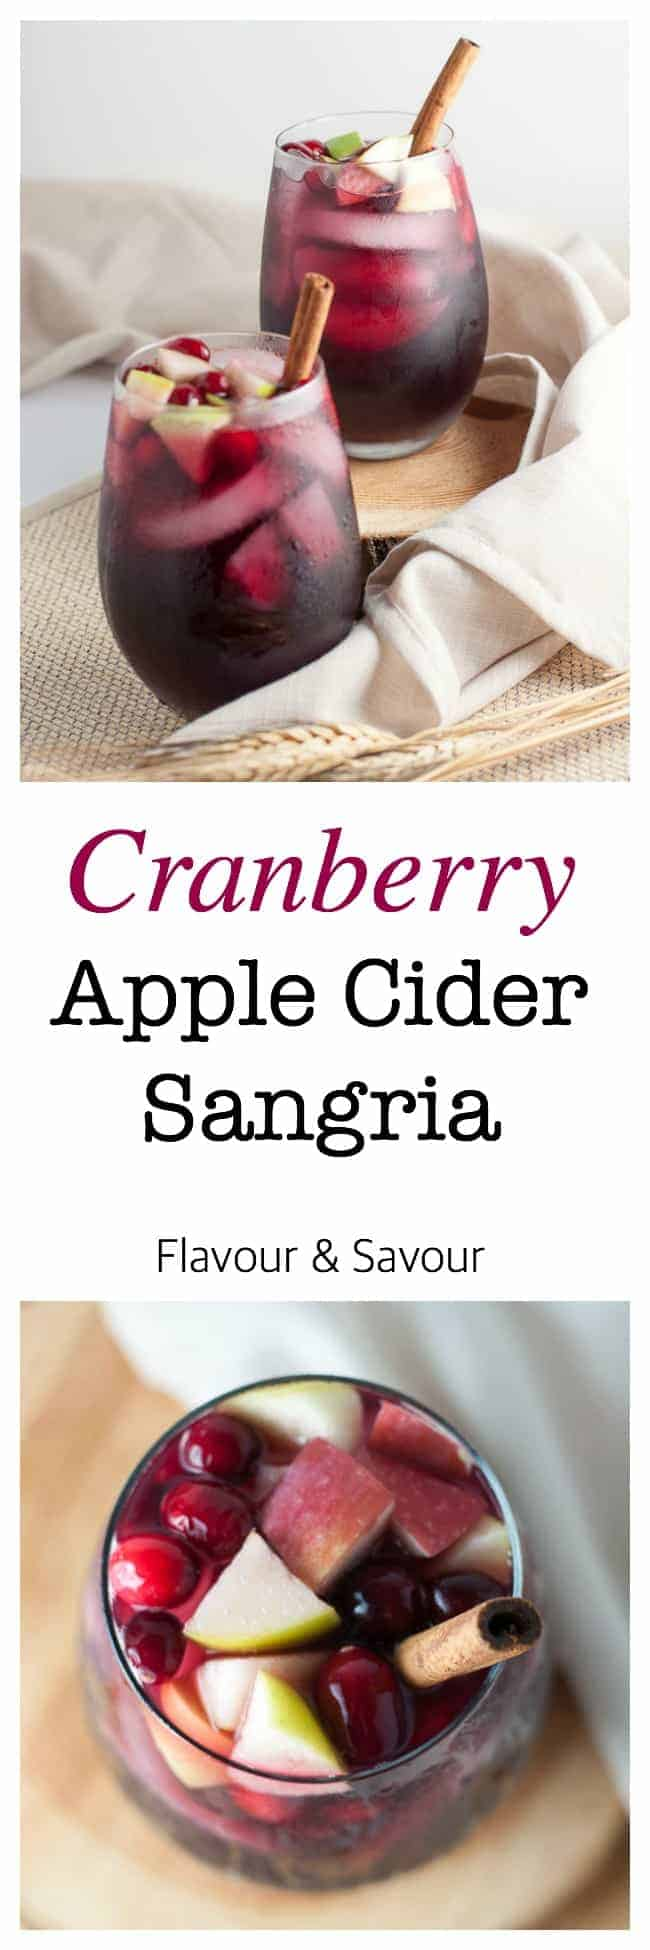 Cranberry Apple Cider Sangria. Celebrate the season with this simple Cranberry Apple Cider Sangria flavoured with fresh cranberries and apples. This one is a crowd-pleaser for any season!